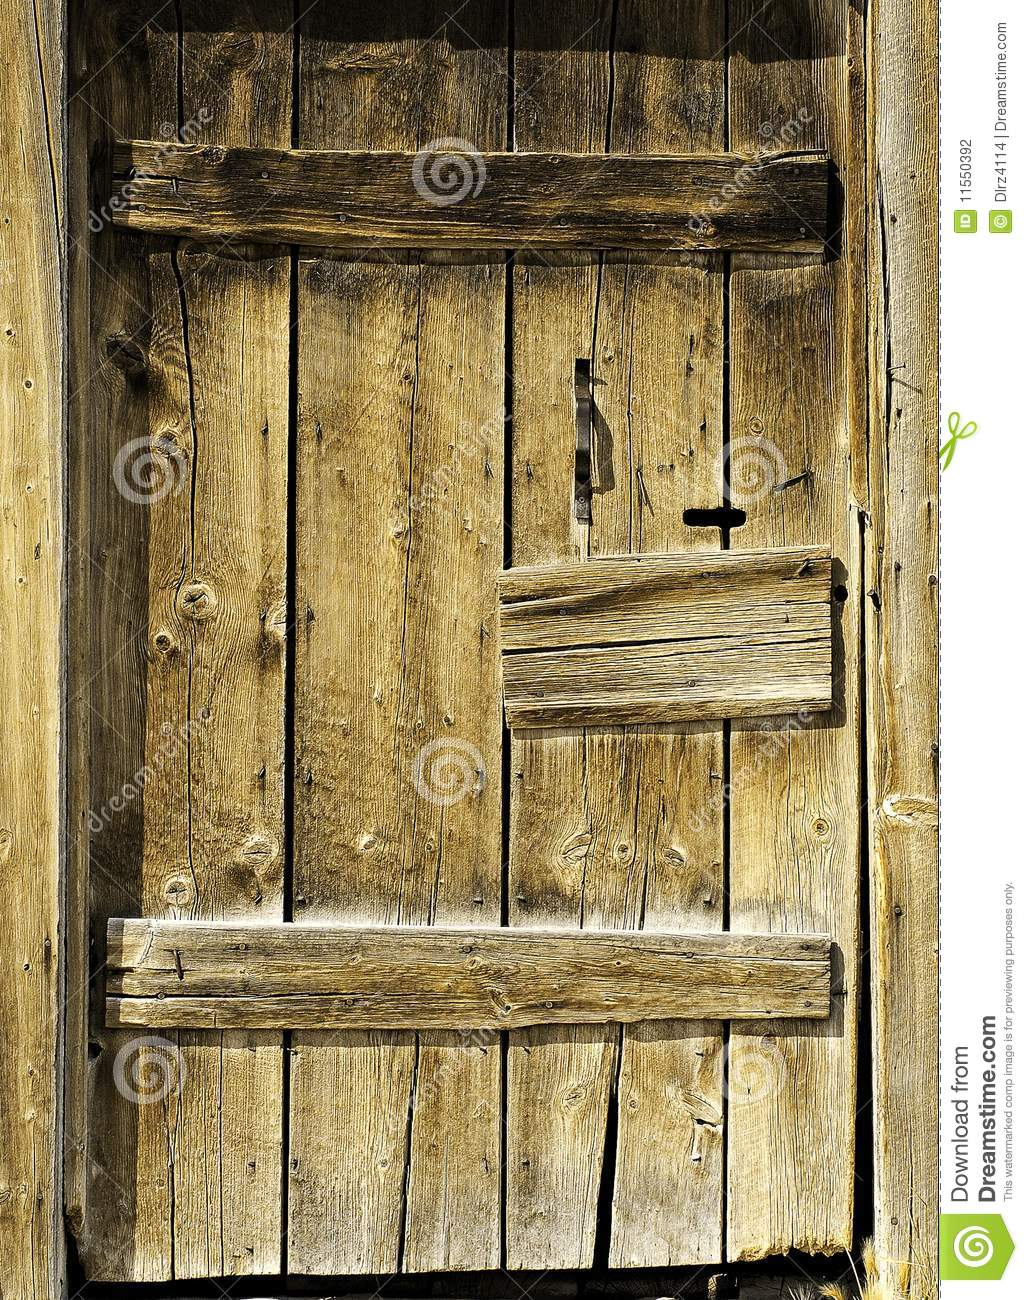 Rustic Door Stock Photography - Image: 11550392